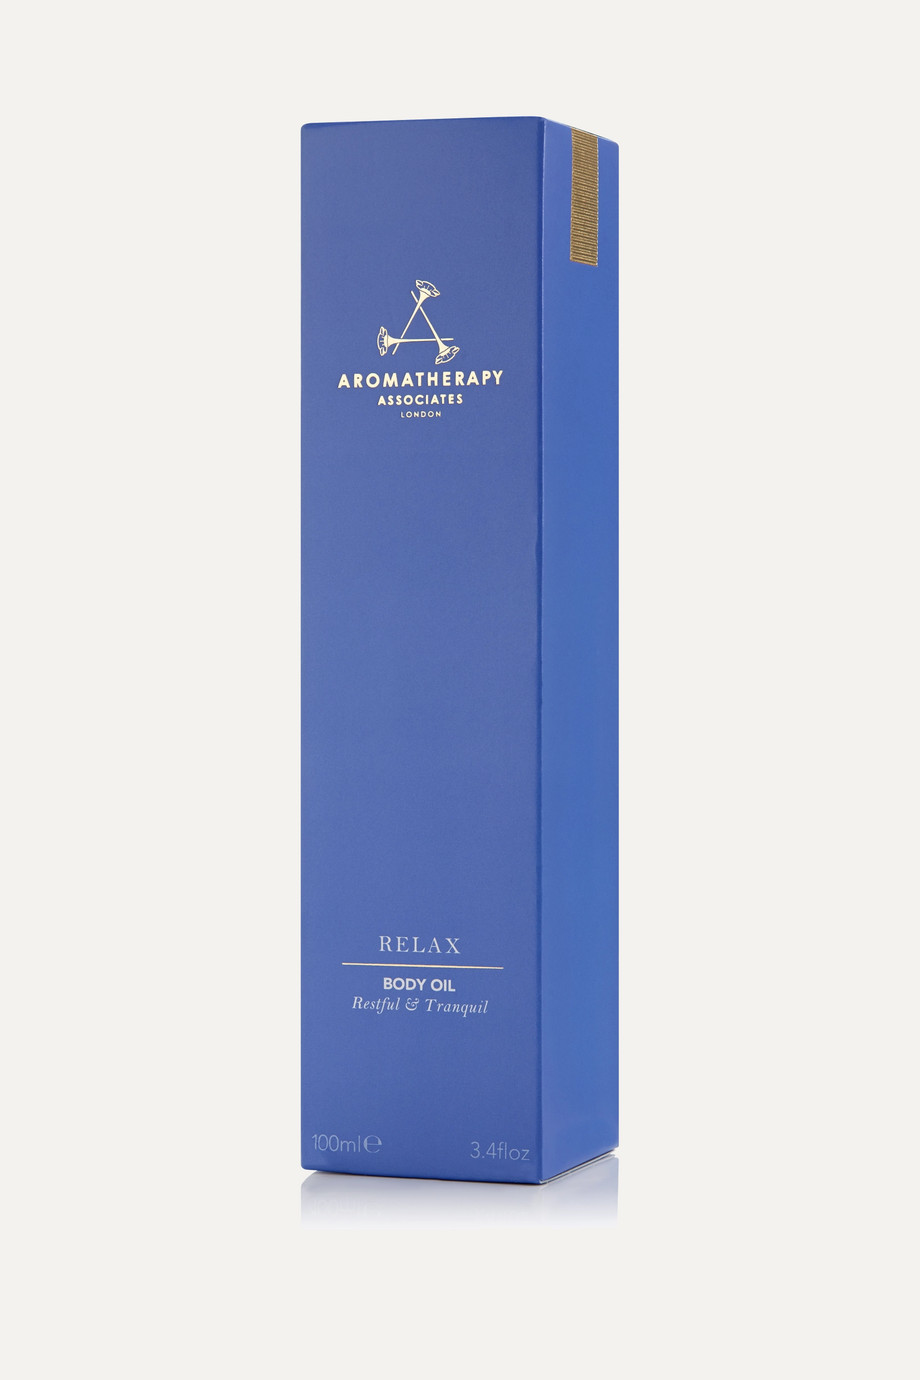 AROMATHERAPY ASSOCIATES Relax Body Oil, 100ml